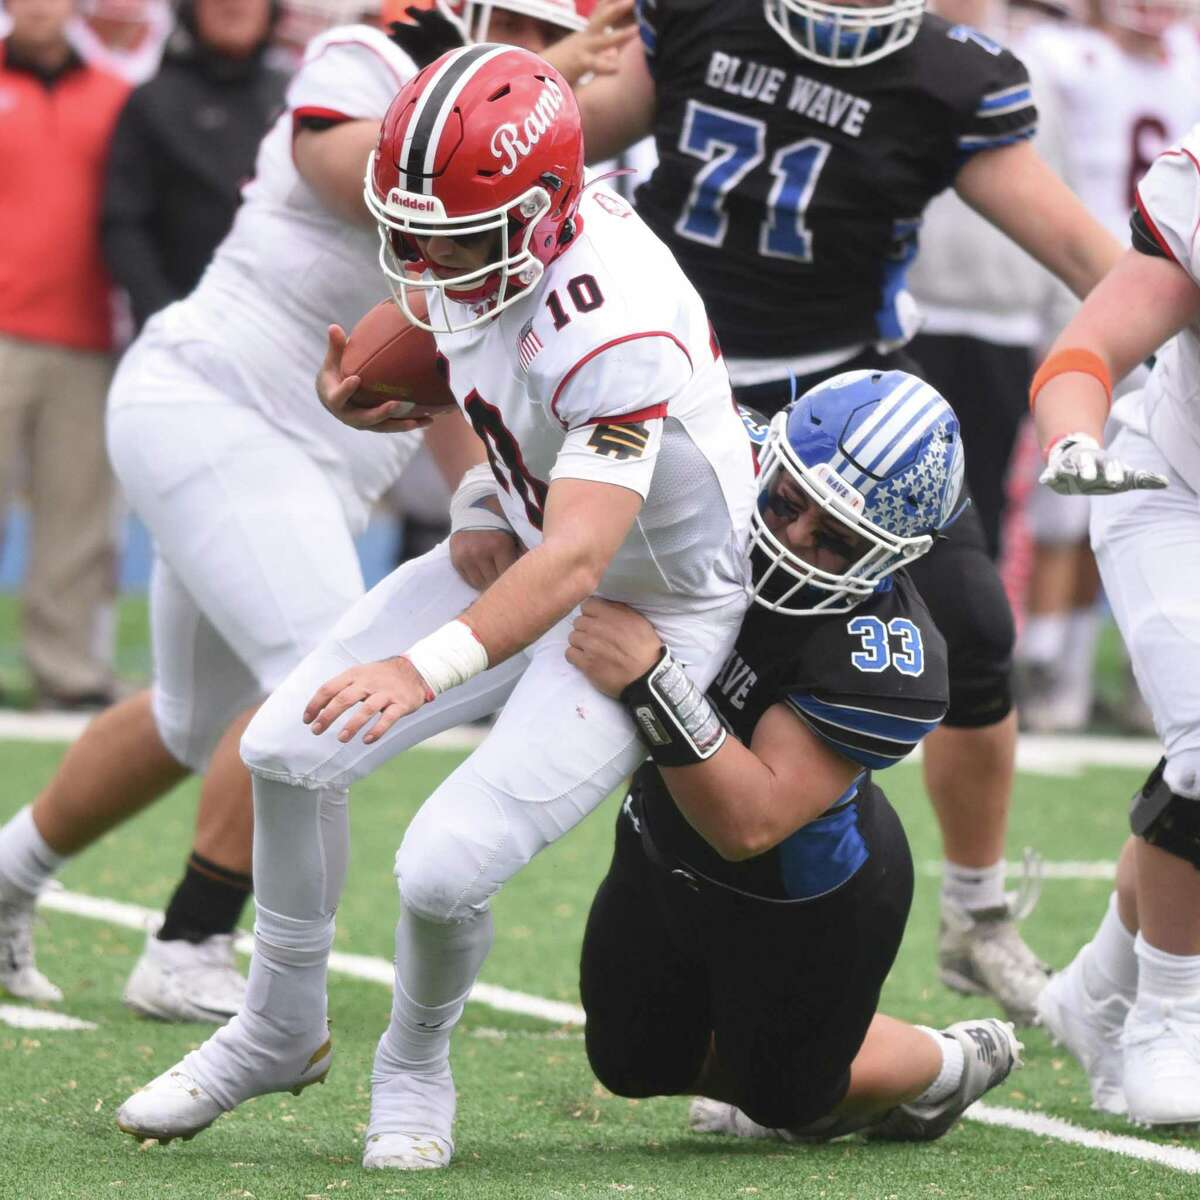 Darien's David Evanchick (33) catches New Canaan quarterback Drew Pyne (10) during the annual Turkey Bowl football game between Darien and New Canaan at Darien High School on Thursday, Nov. 28, 2019.